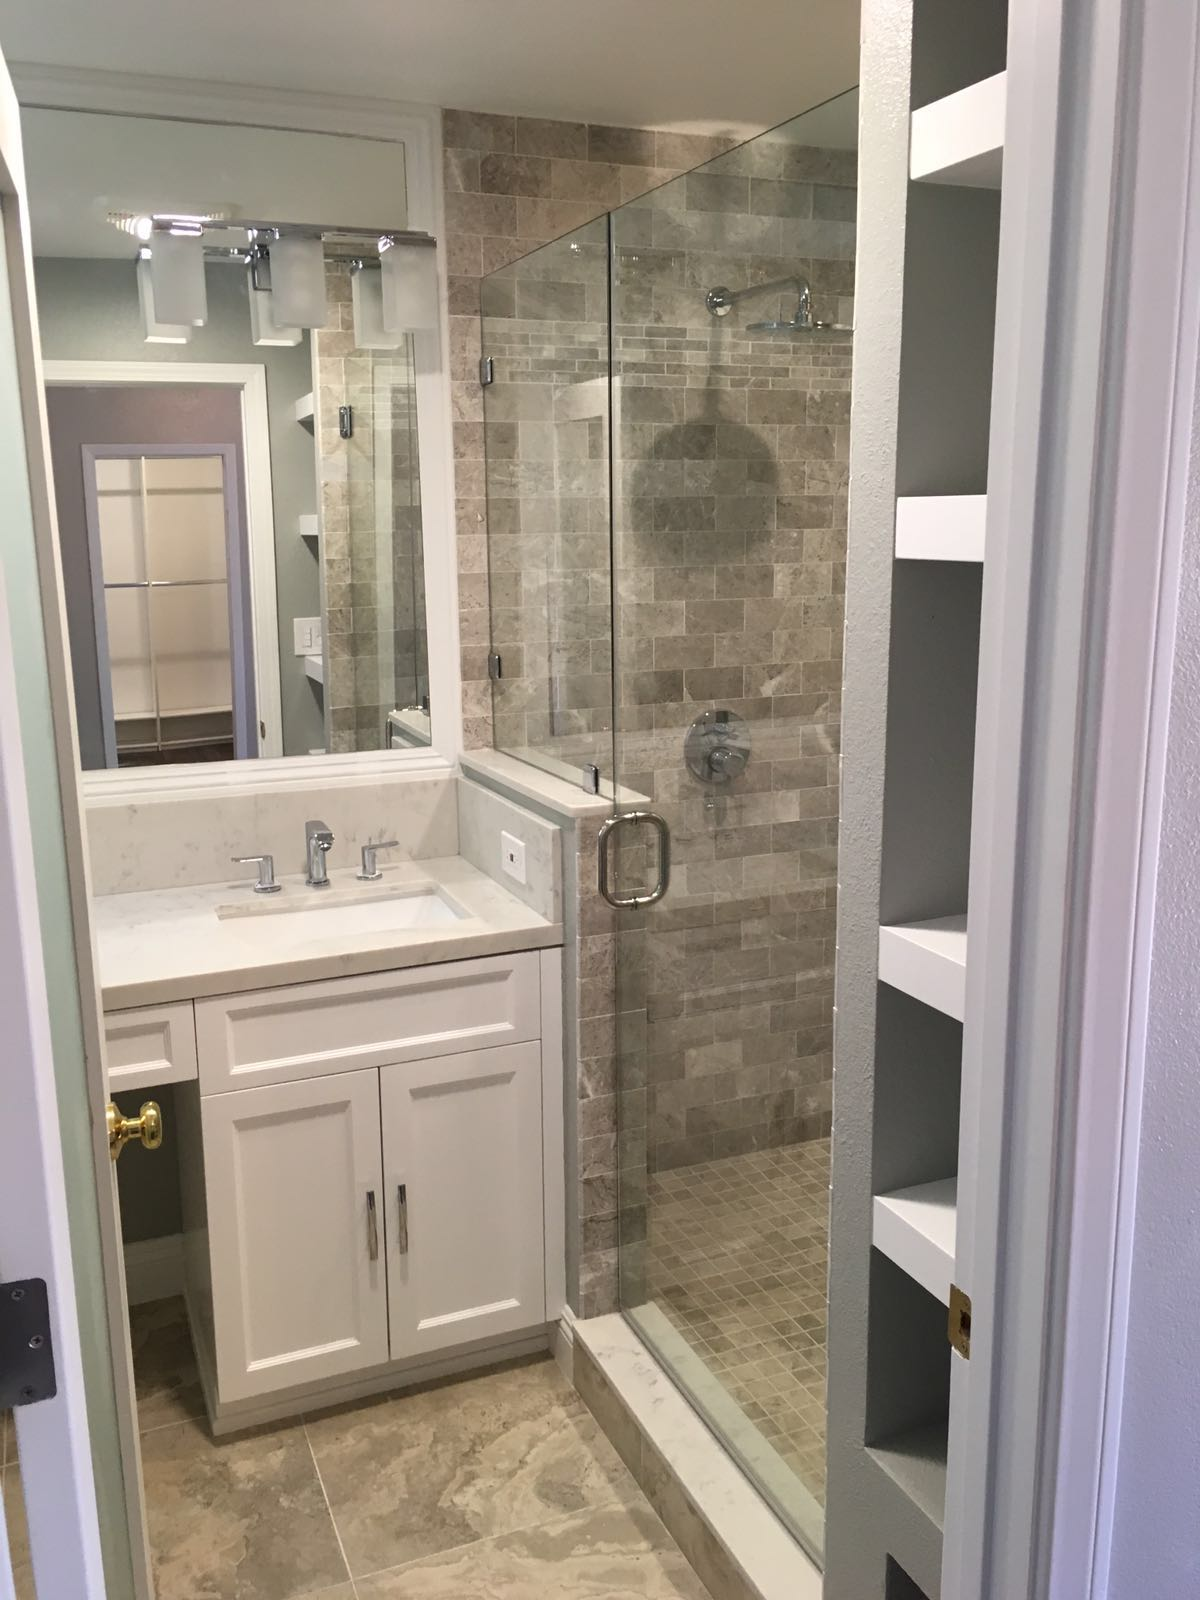 Top General Contractors In San Francisco CA With Photos - Do i need a building permit to remodel my bathroom